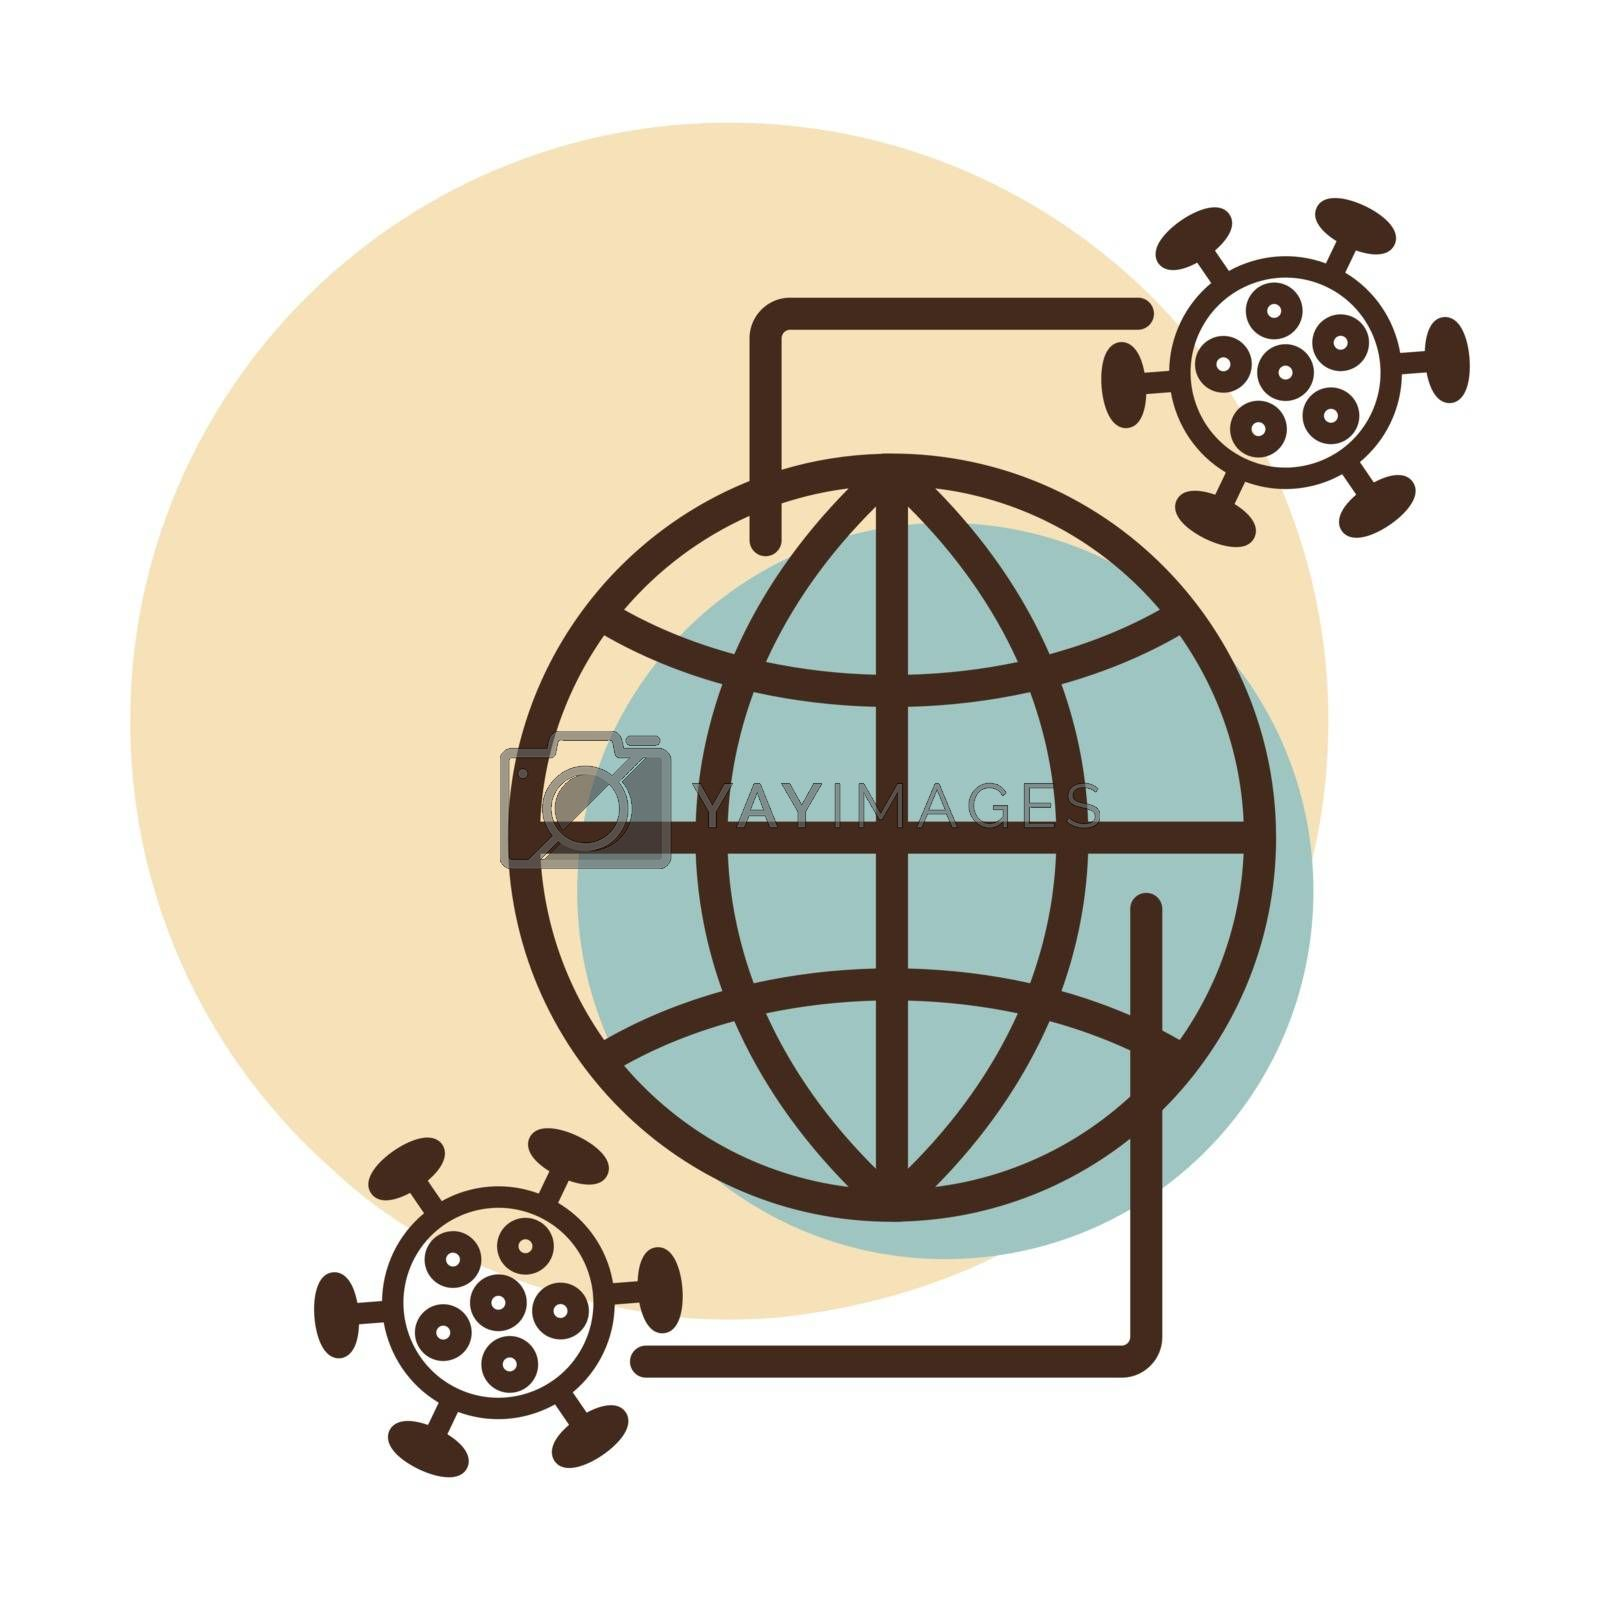 Planet Earth globe with icon of coronavirus 2019-nCov. The spread of a virus outbreak in the world. COVID 19 outbreak and world pandemic risk concept.